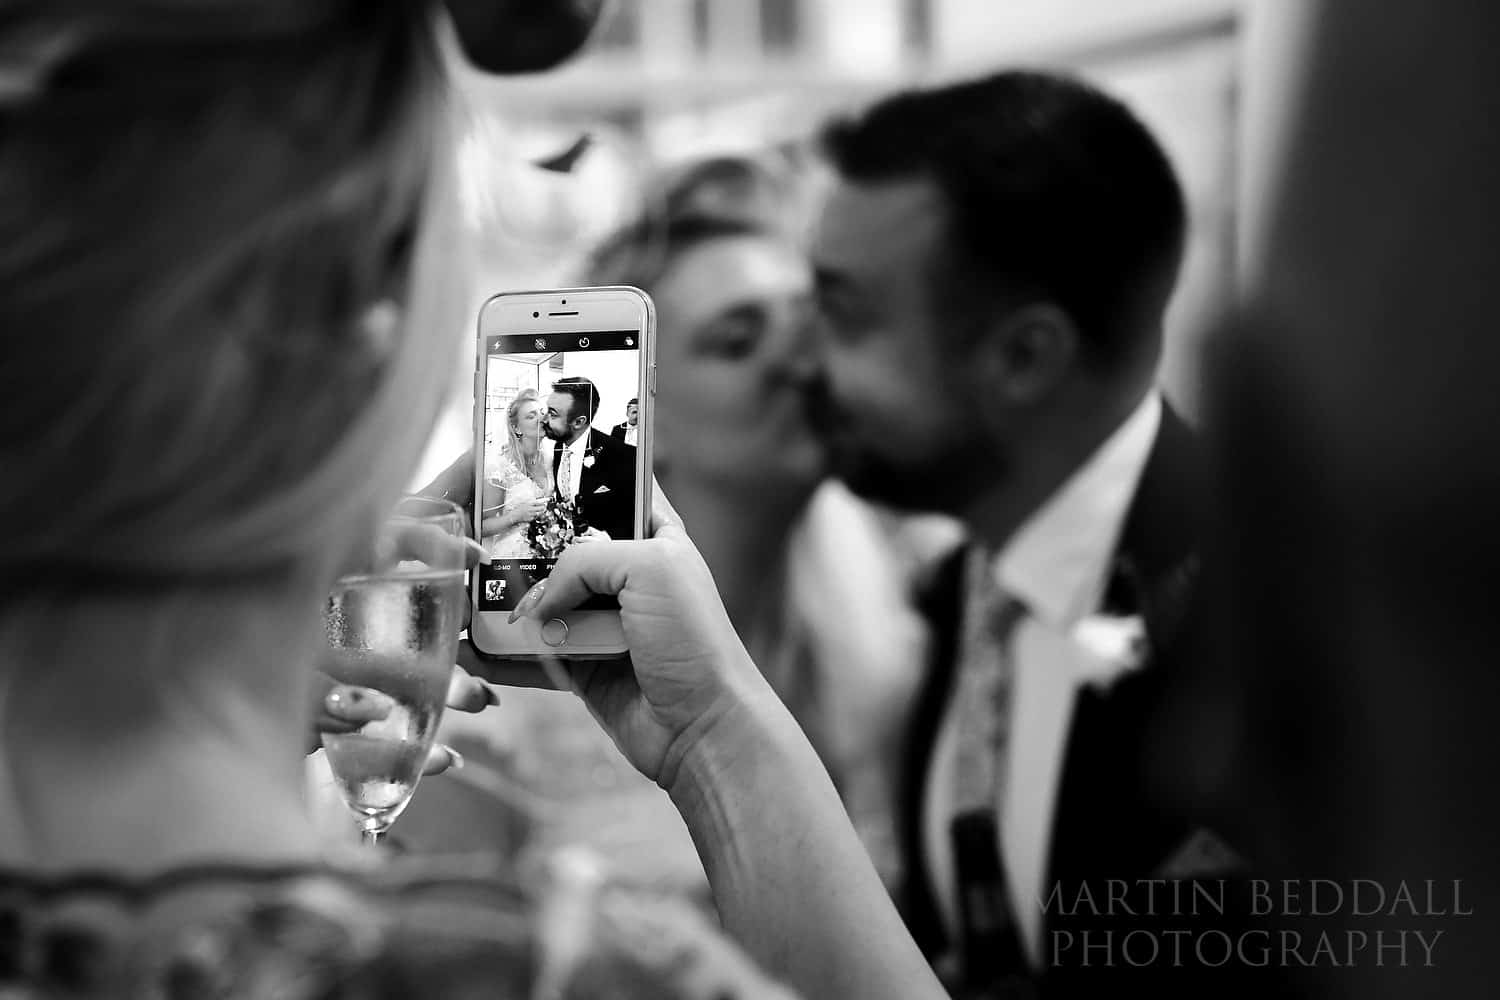 Iphone picture of bride and groom kissing